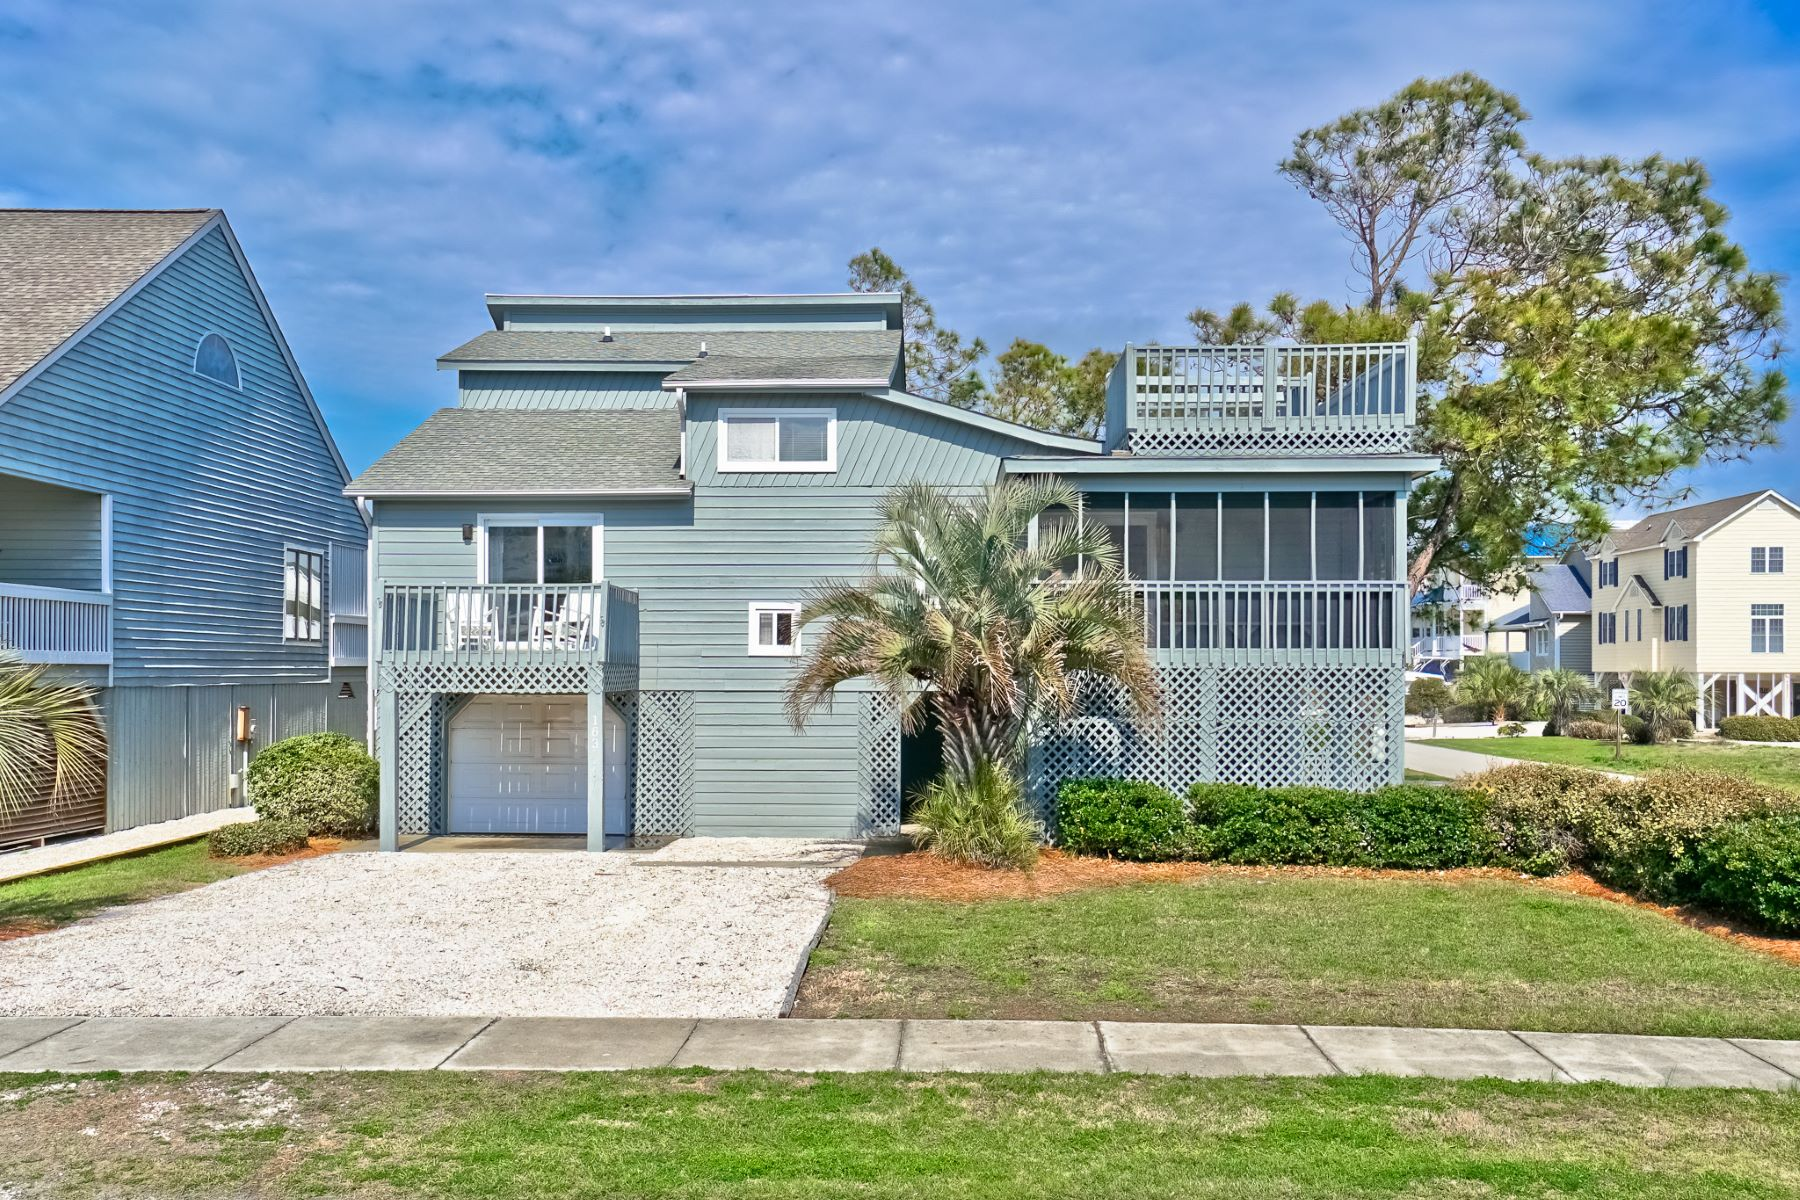 Single Family Home for Sale at Spacious Canal Home Located on Oversized Corner Lot 163 E Second Street, Ocean Isle Beach, North Carolina, 28469 United States